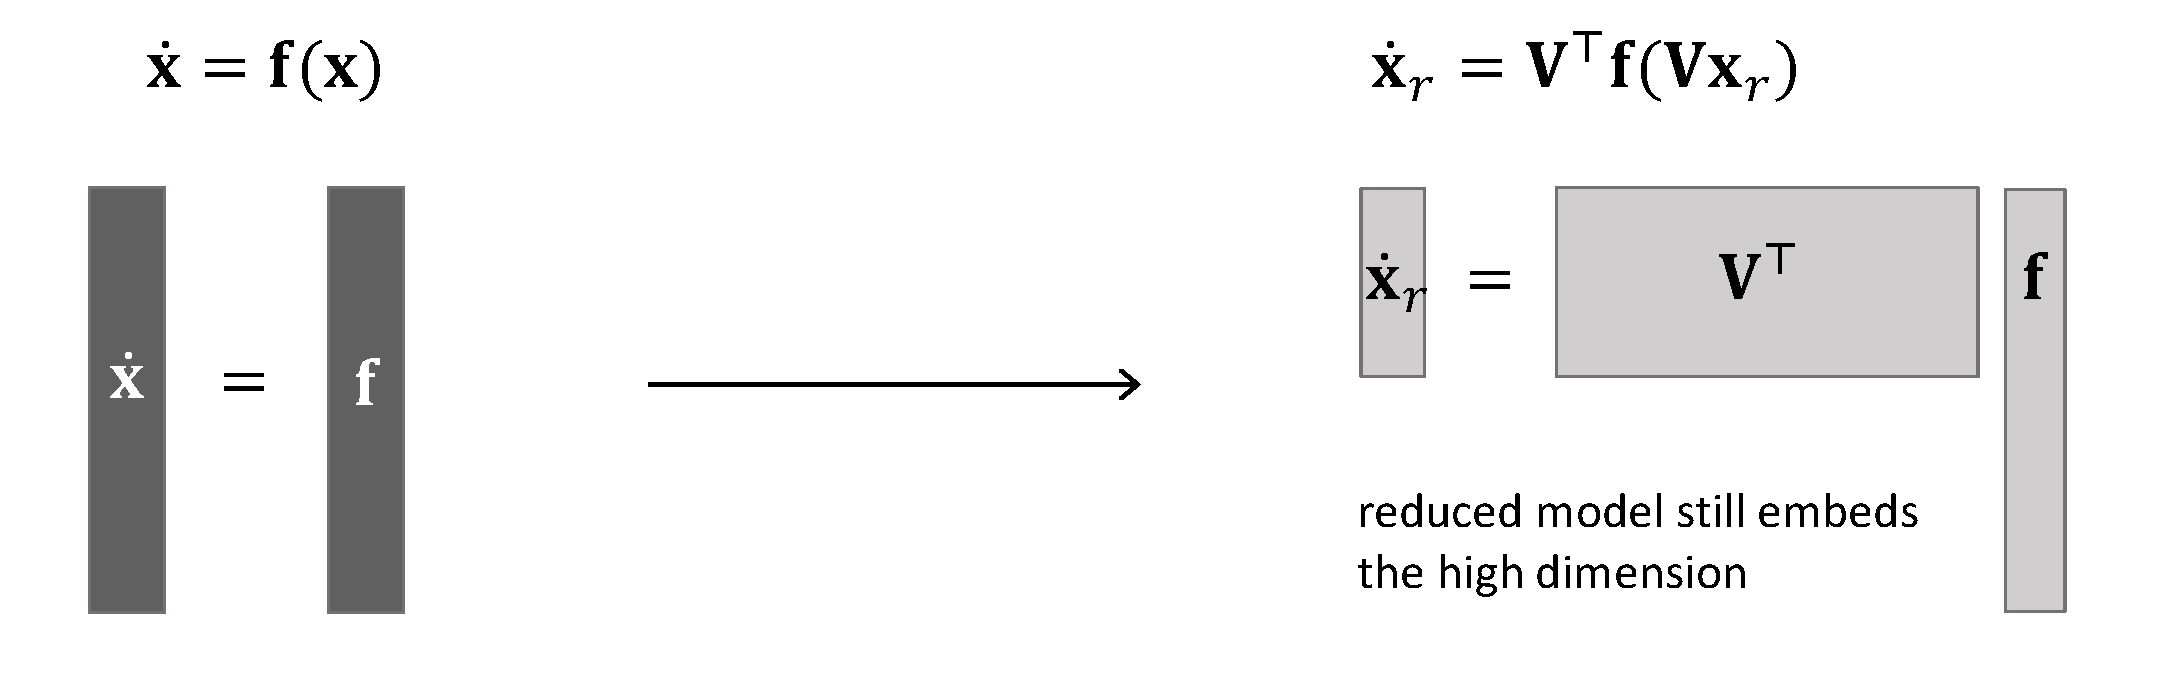 projection of a nonlinear model still embeds the high dimension of the original system